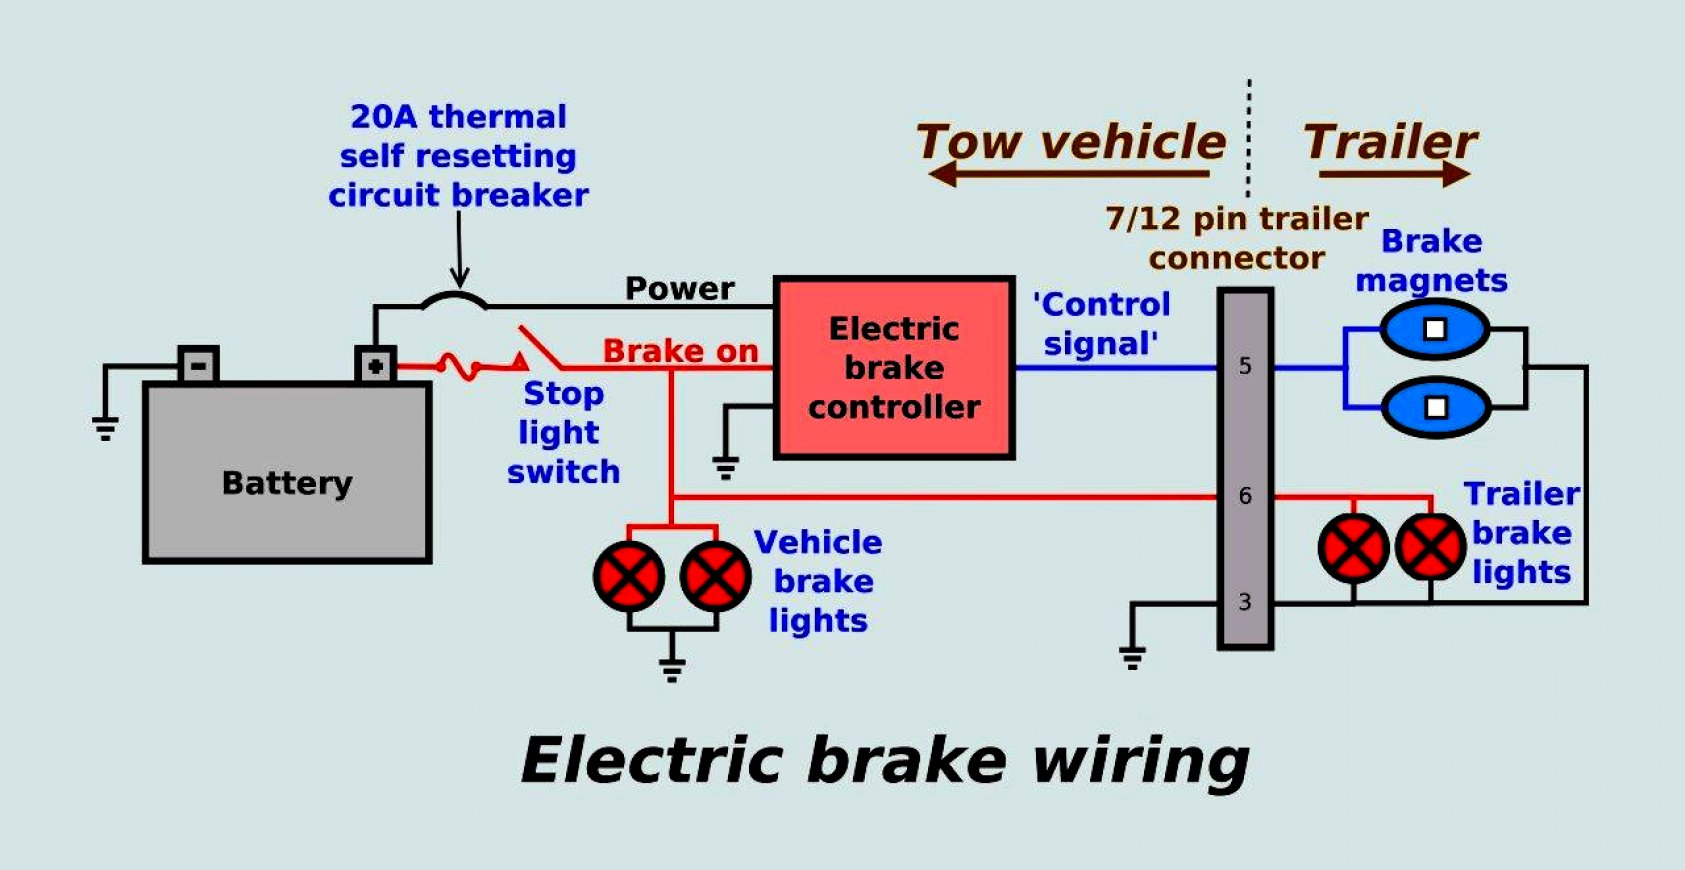 Electric Trailer Brake Wiring Diagram | Wiring Diagram - Dexter Trailer Brakes Wiring Diagram